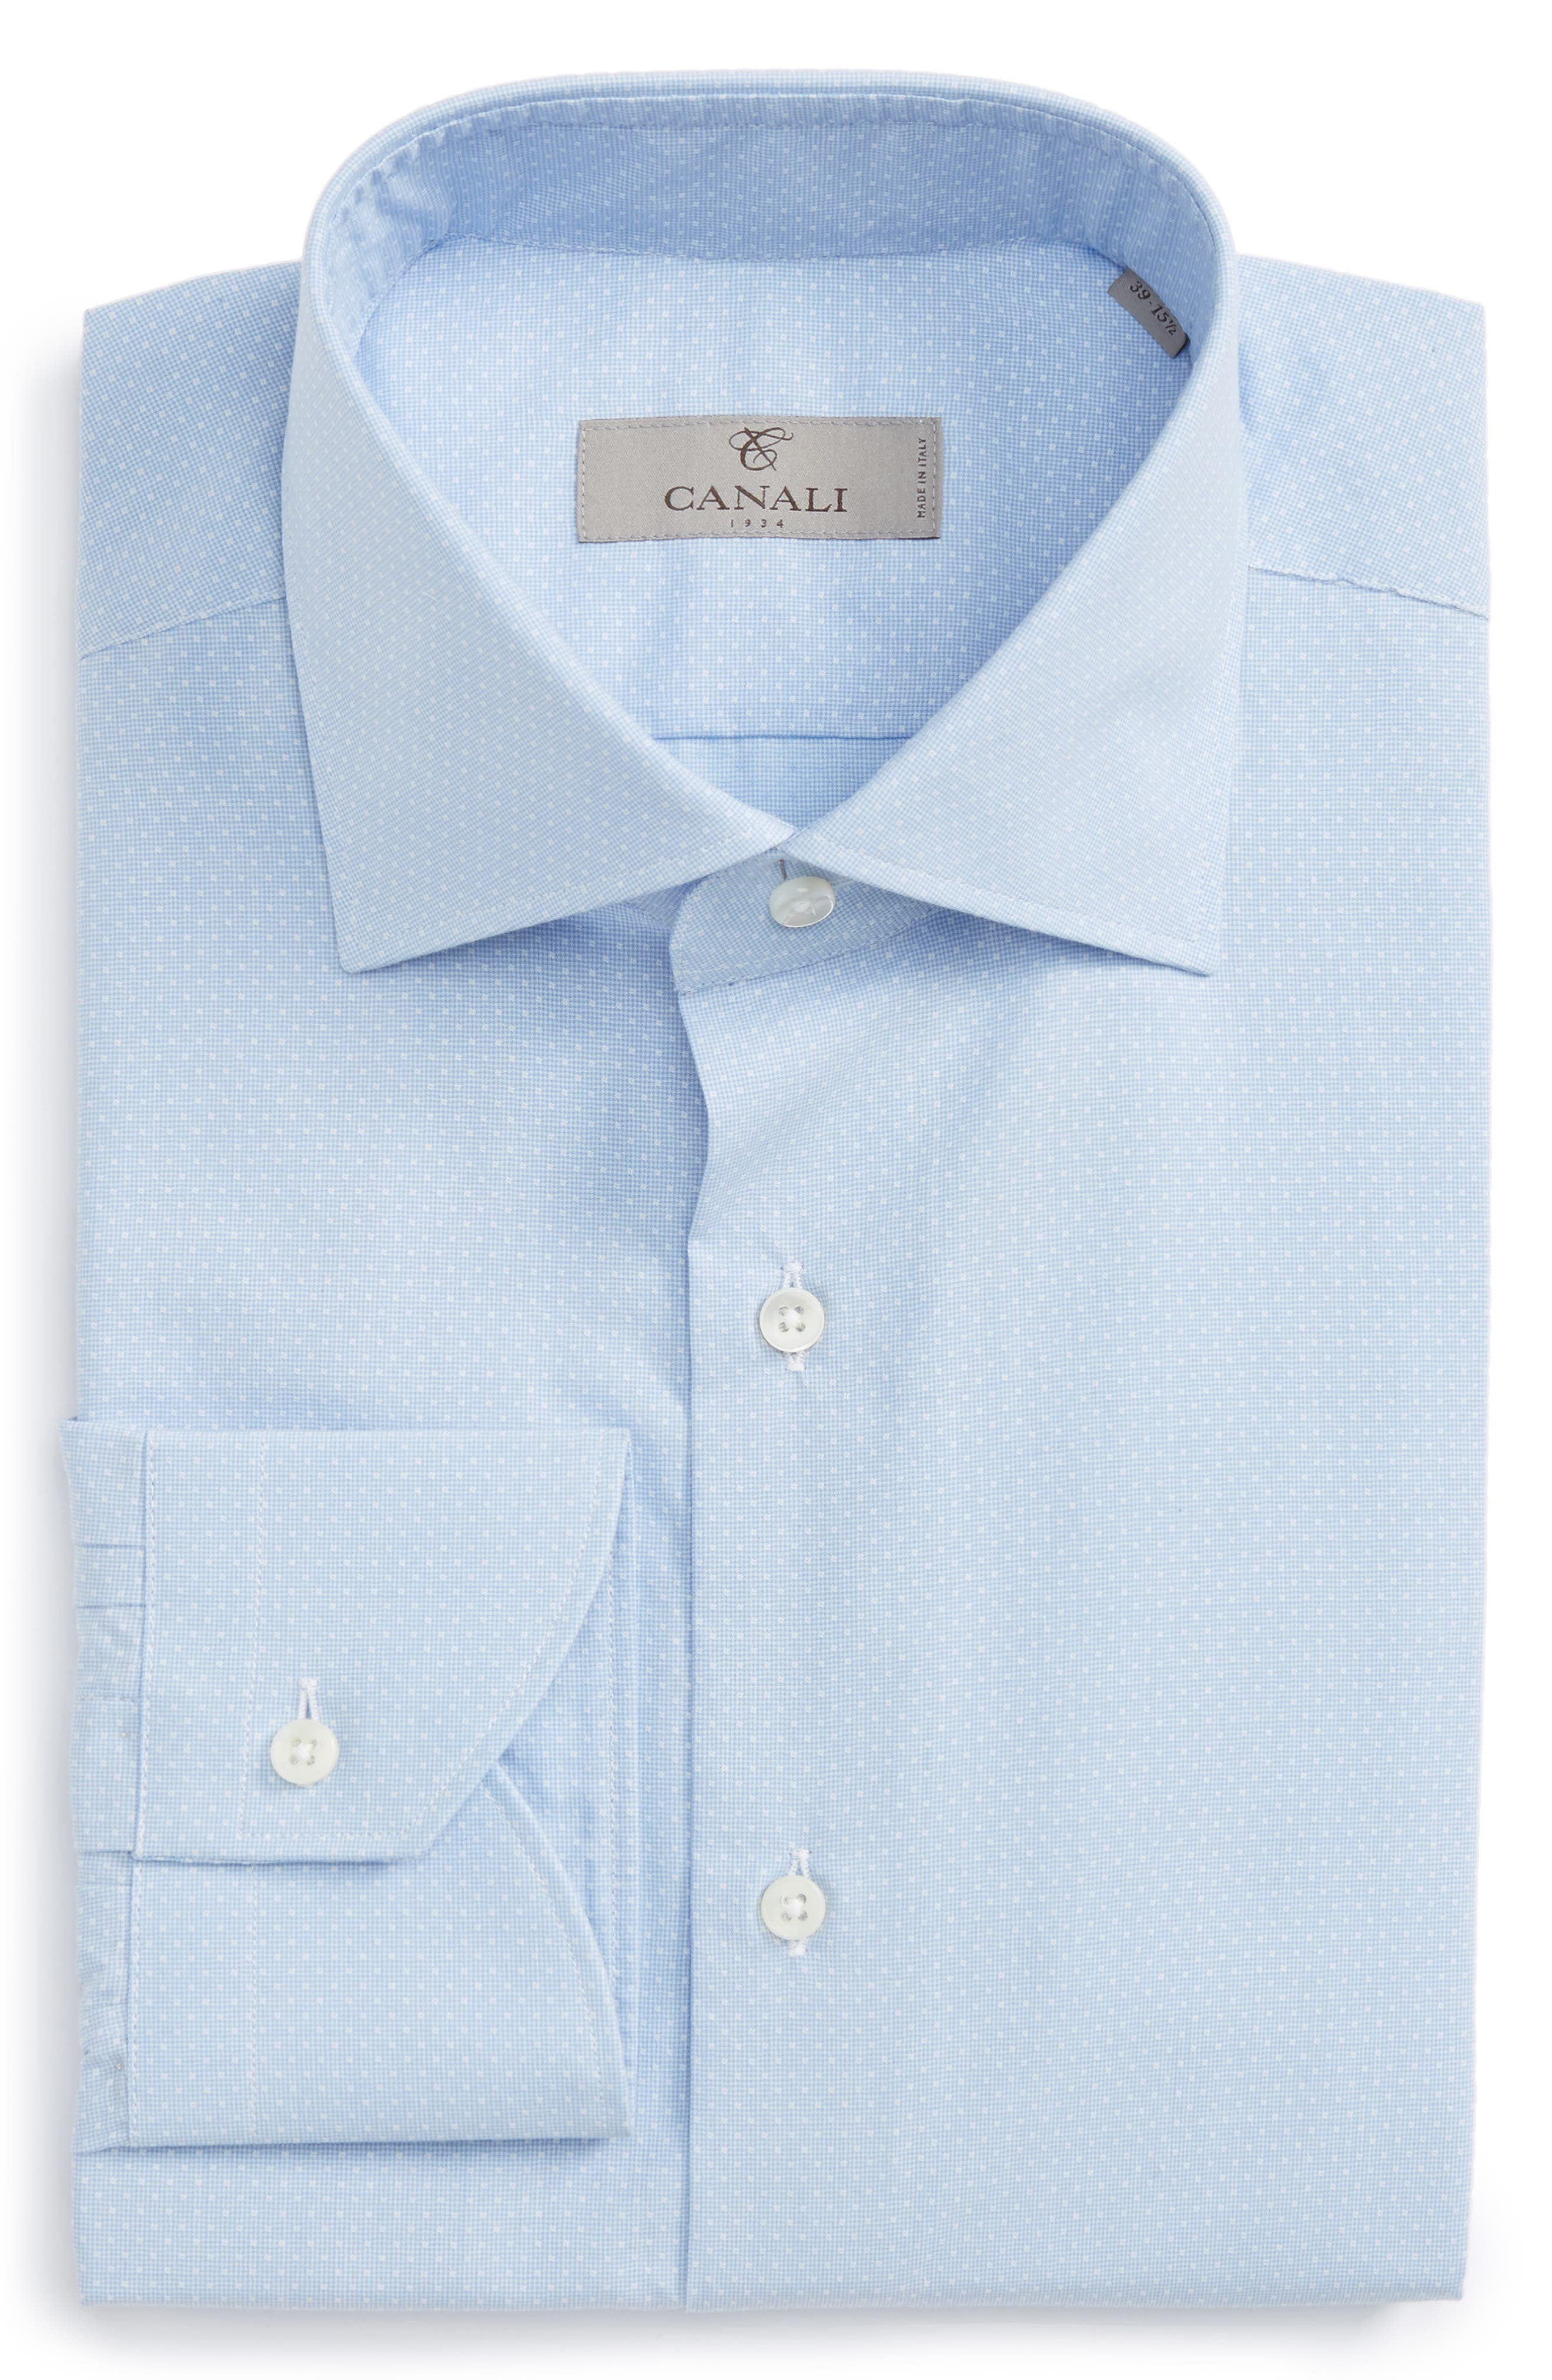 Regular Fit Check Dress Shirt,                         Main,                         color, Light Blue